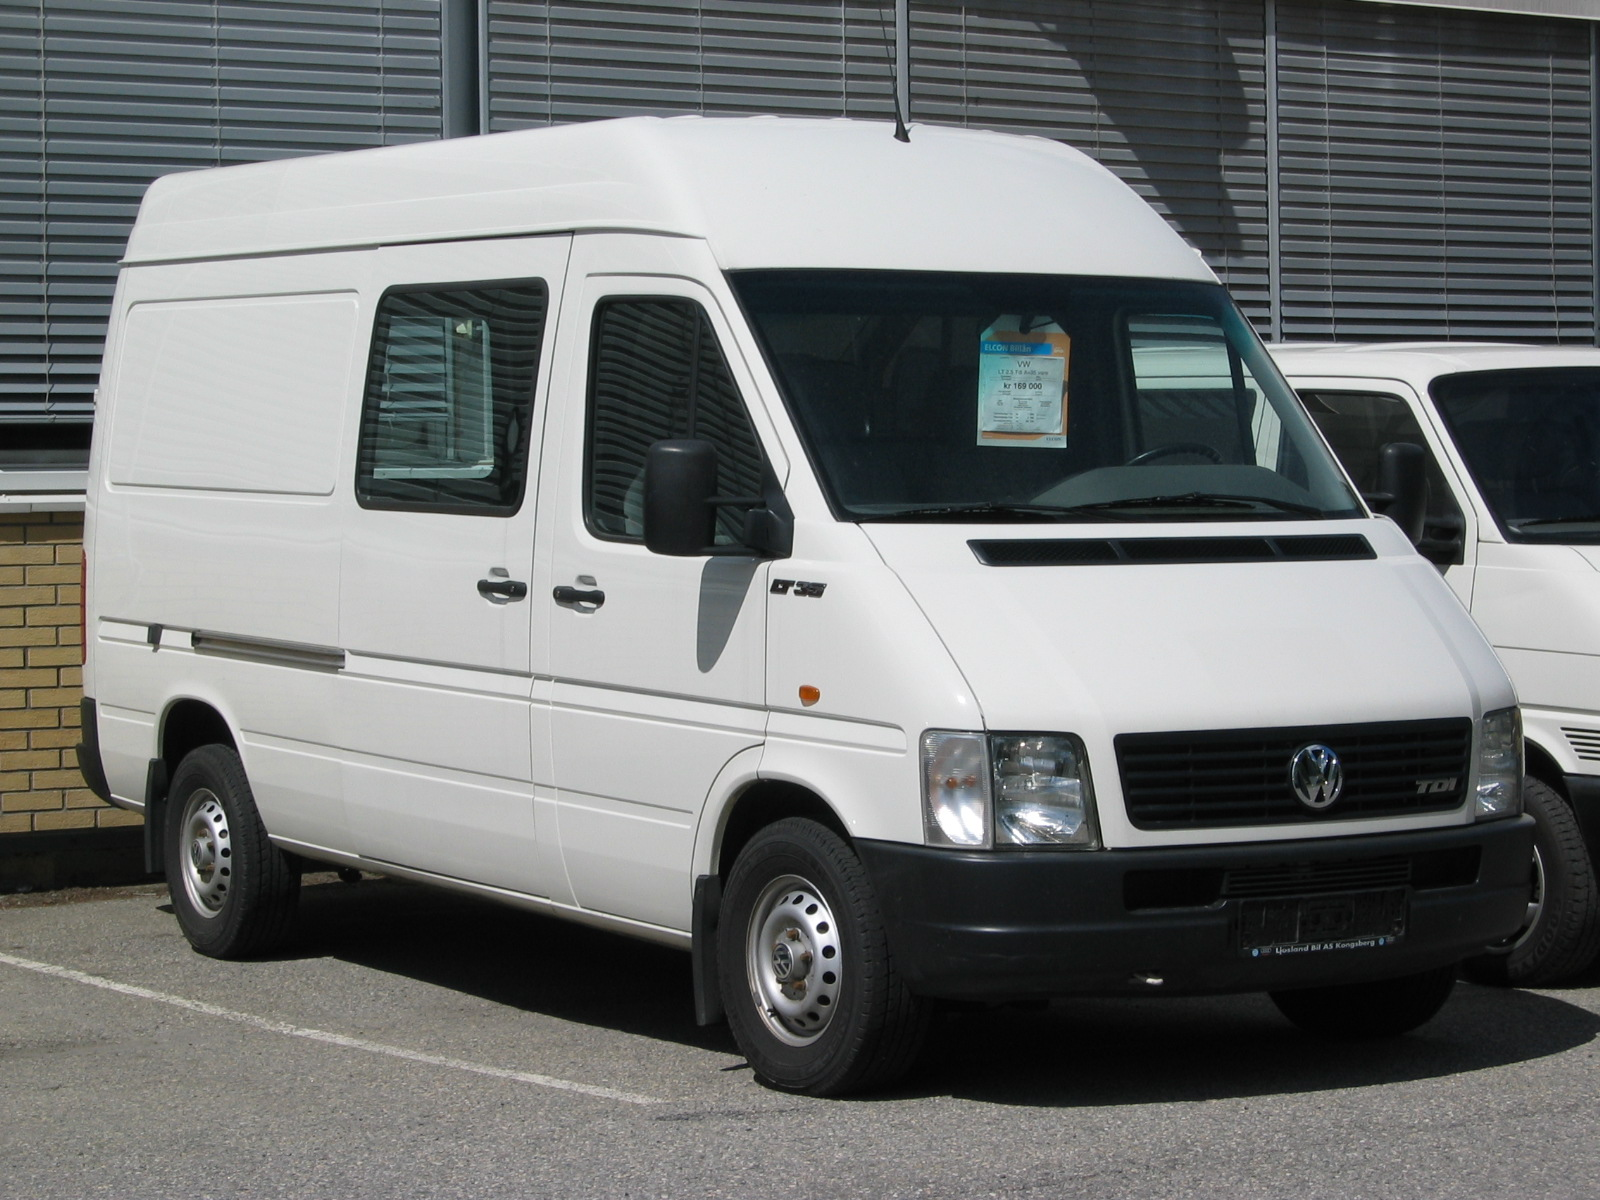 Volkswagen lt35 photo - 3